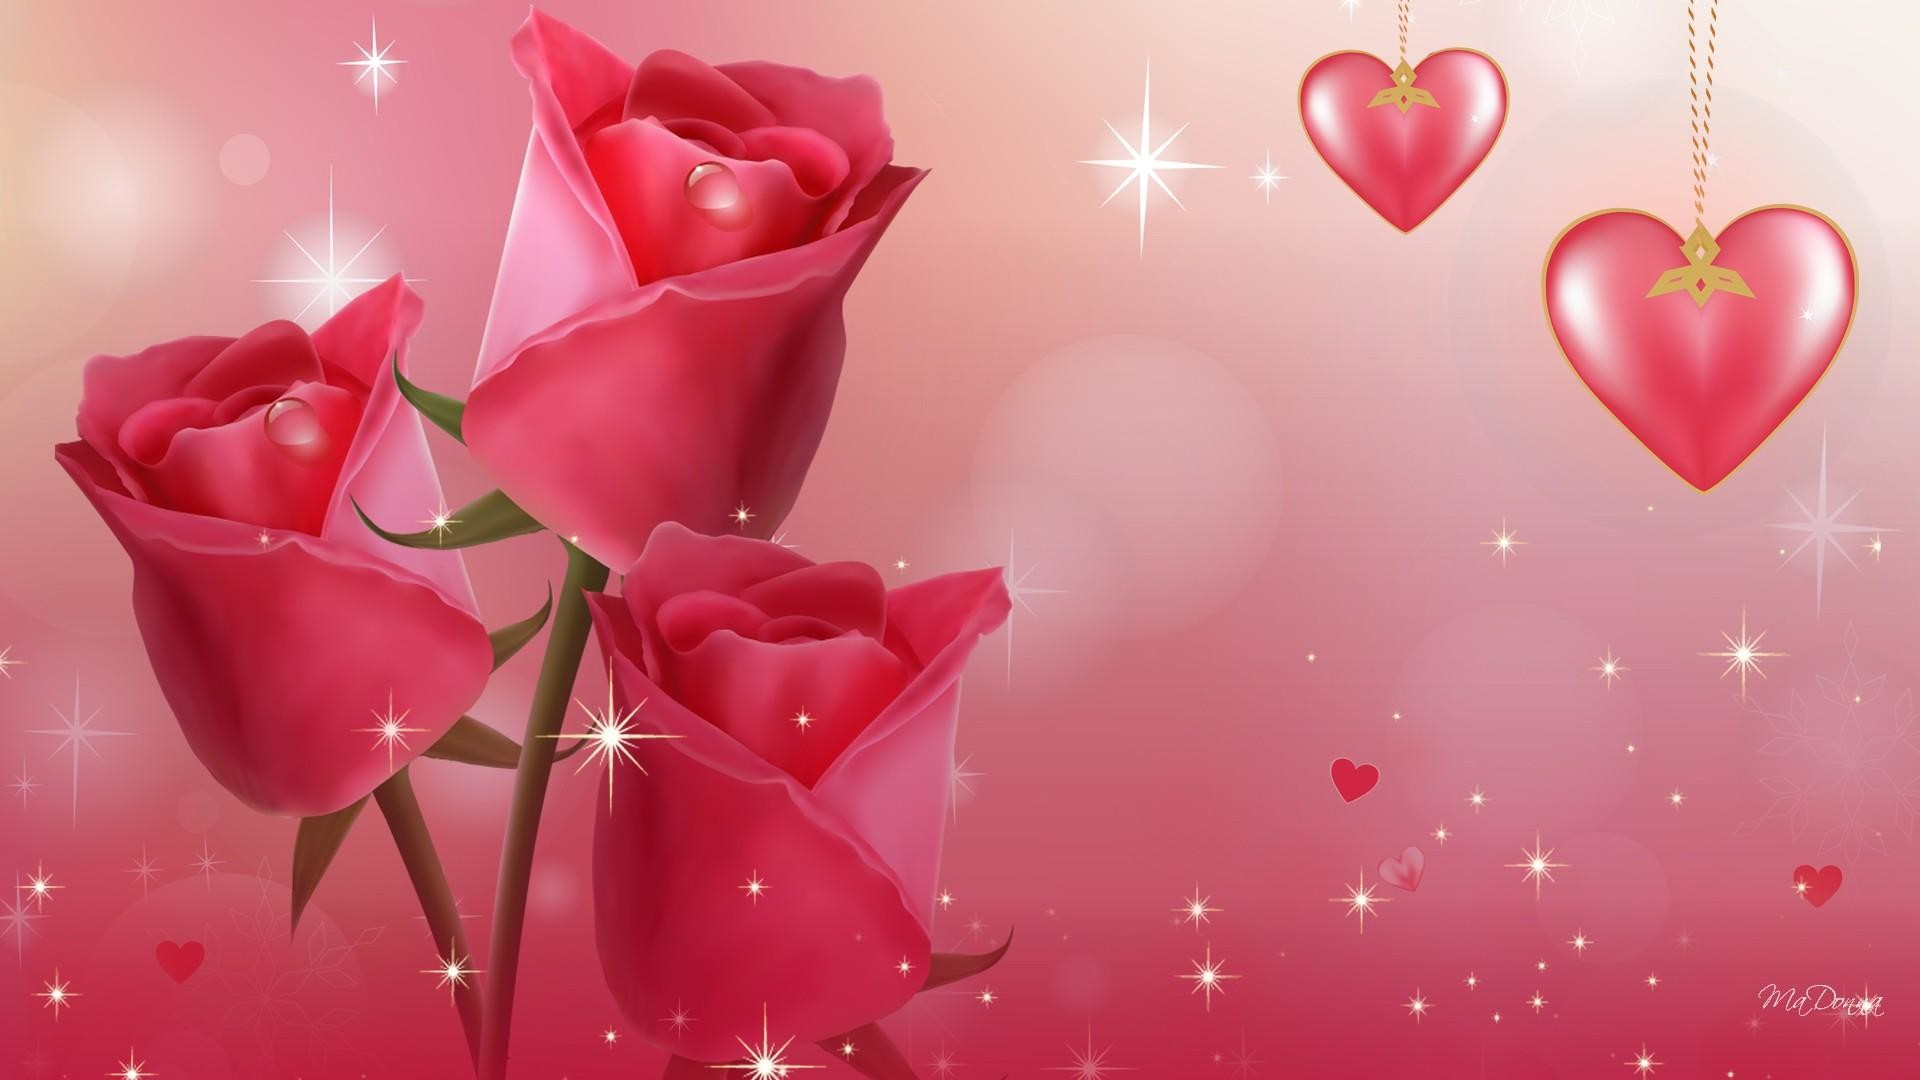 Beautiful Love Wallpaper Hd: Beautiful Love Wallpaper ·①